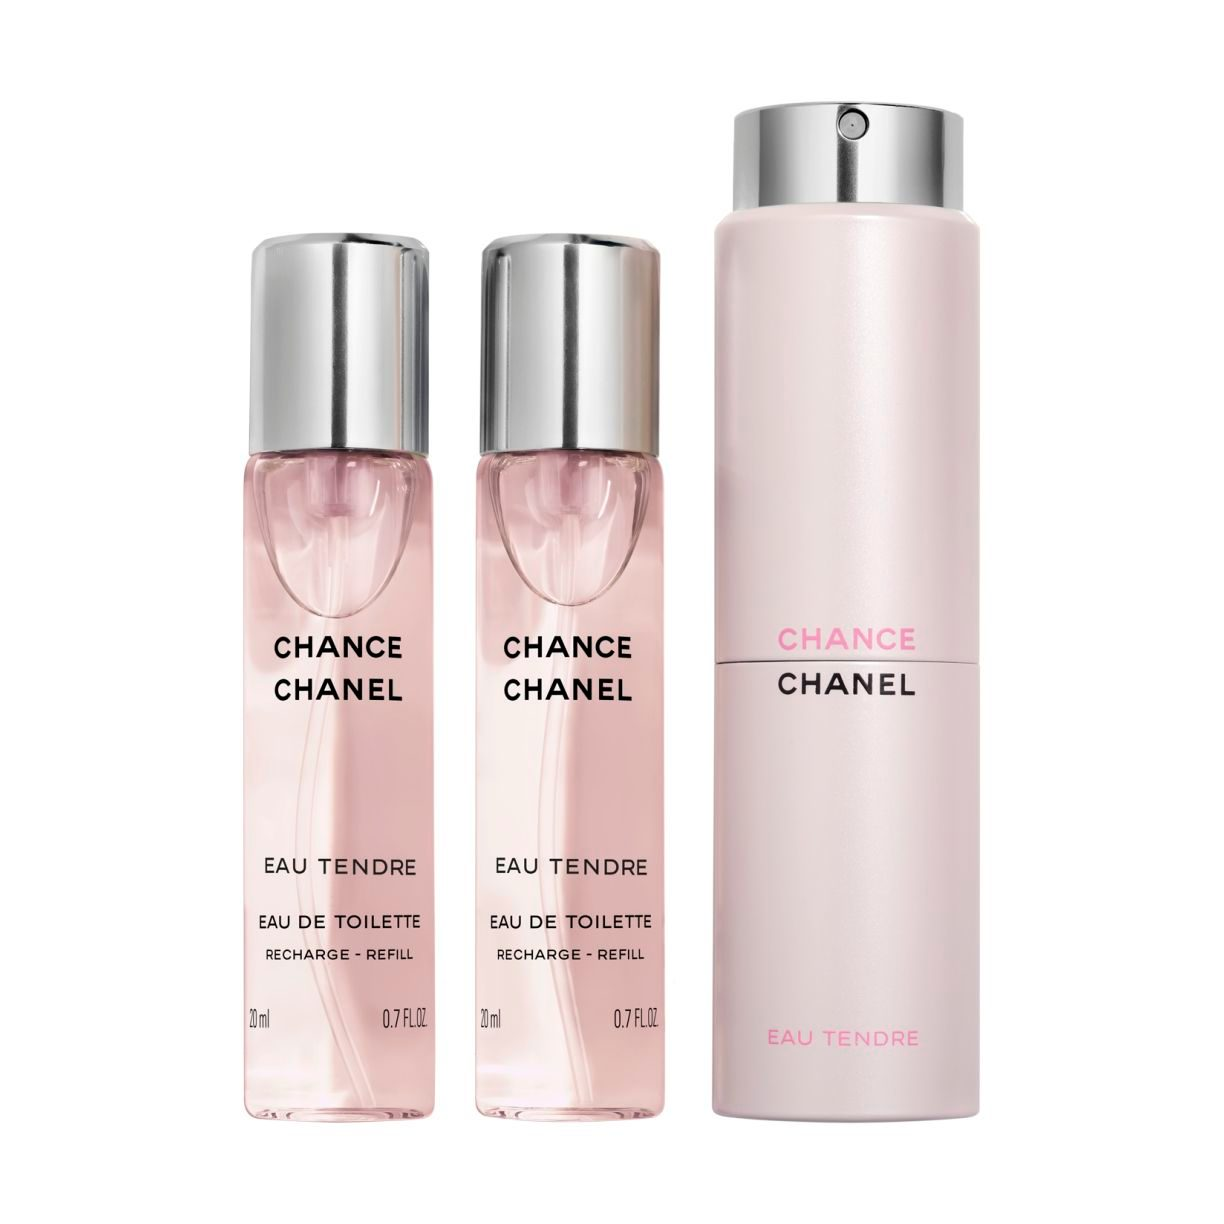 CHANCE EAU TENDRE EAU DE TOILETTE TWIST AND SPRAY 3 x 20ml